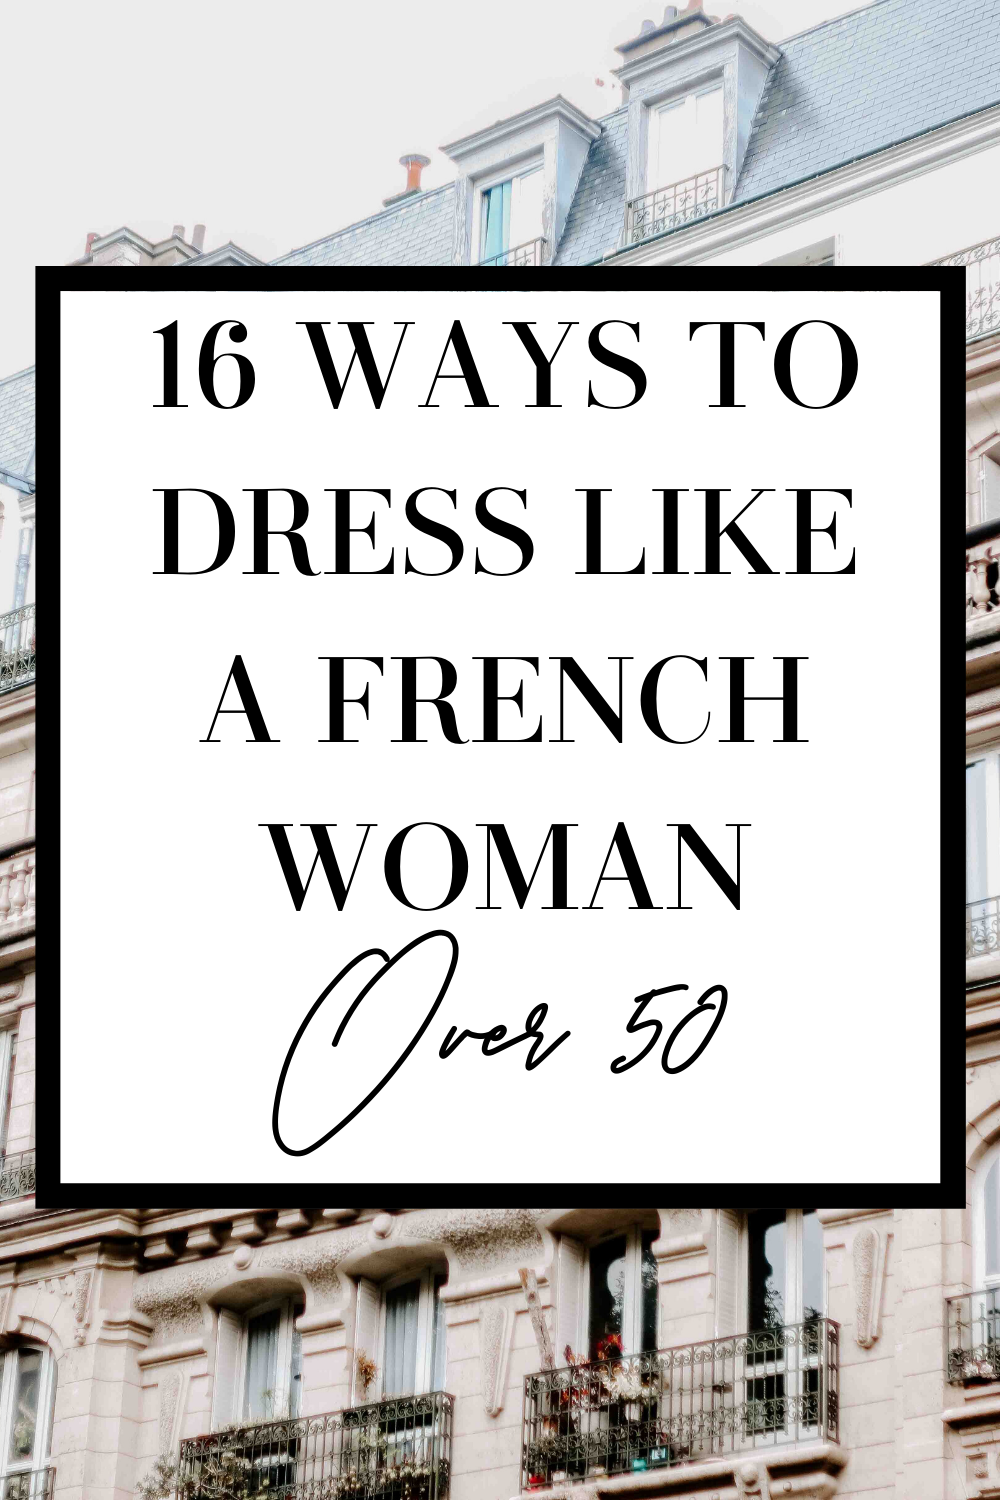 How to Dress Like a French Woman Over 50 - MY CHIC